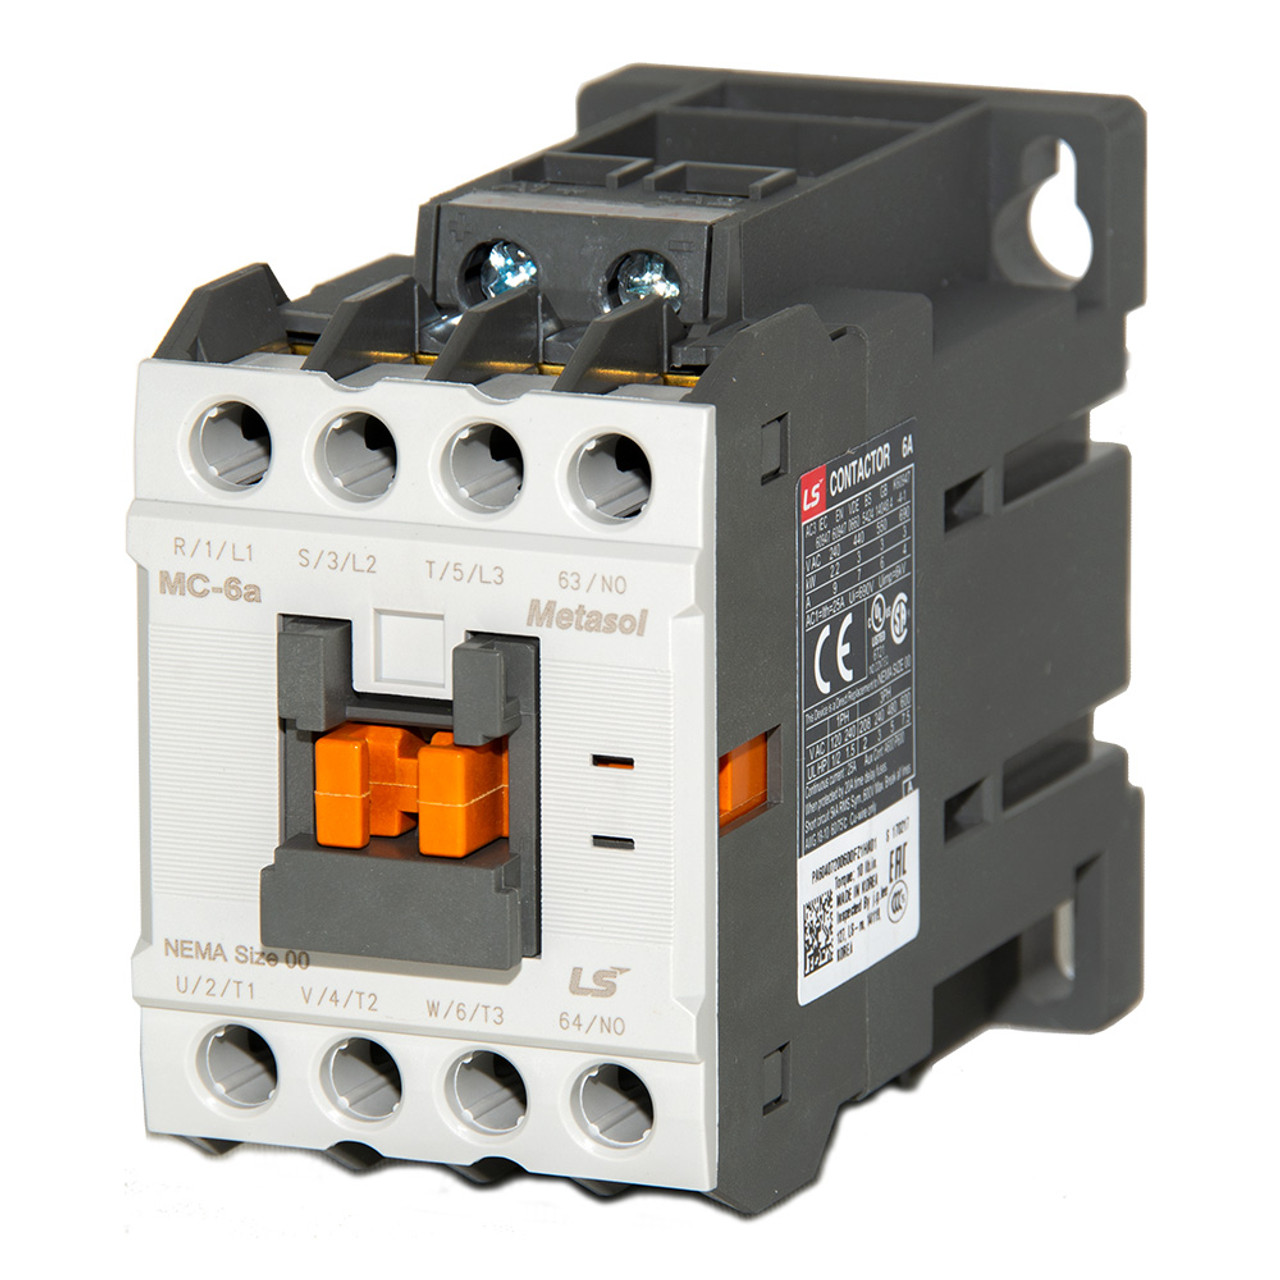 small resolution of lsis mc 6a metasol series magnetic contactor dc12v screw 1a